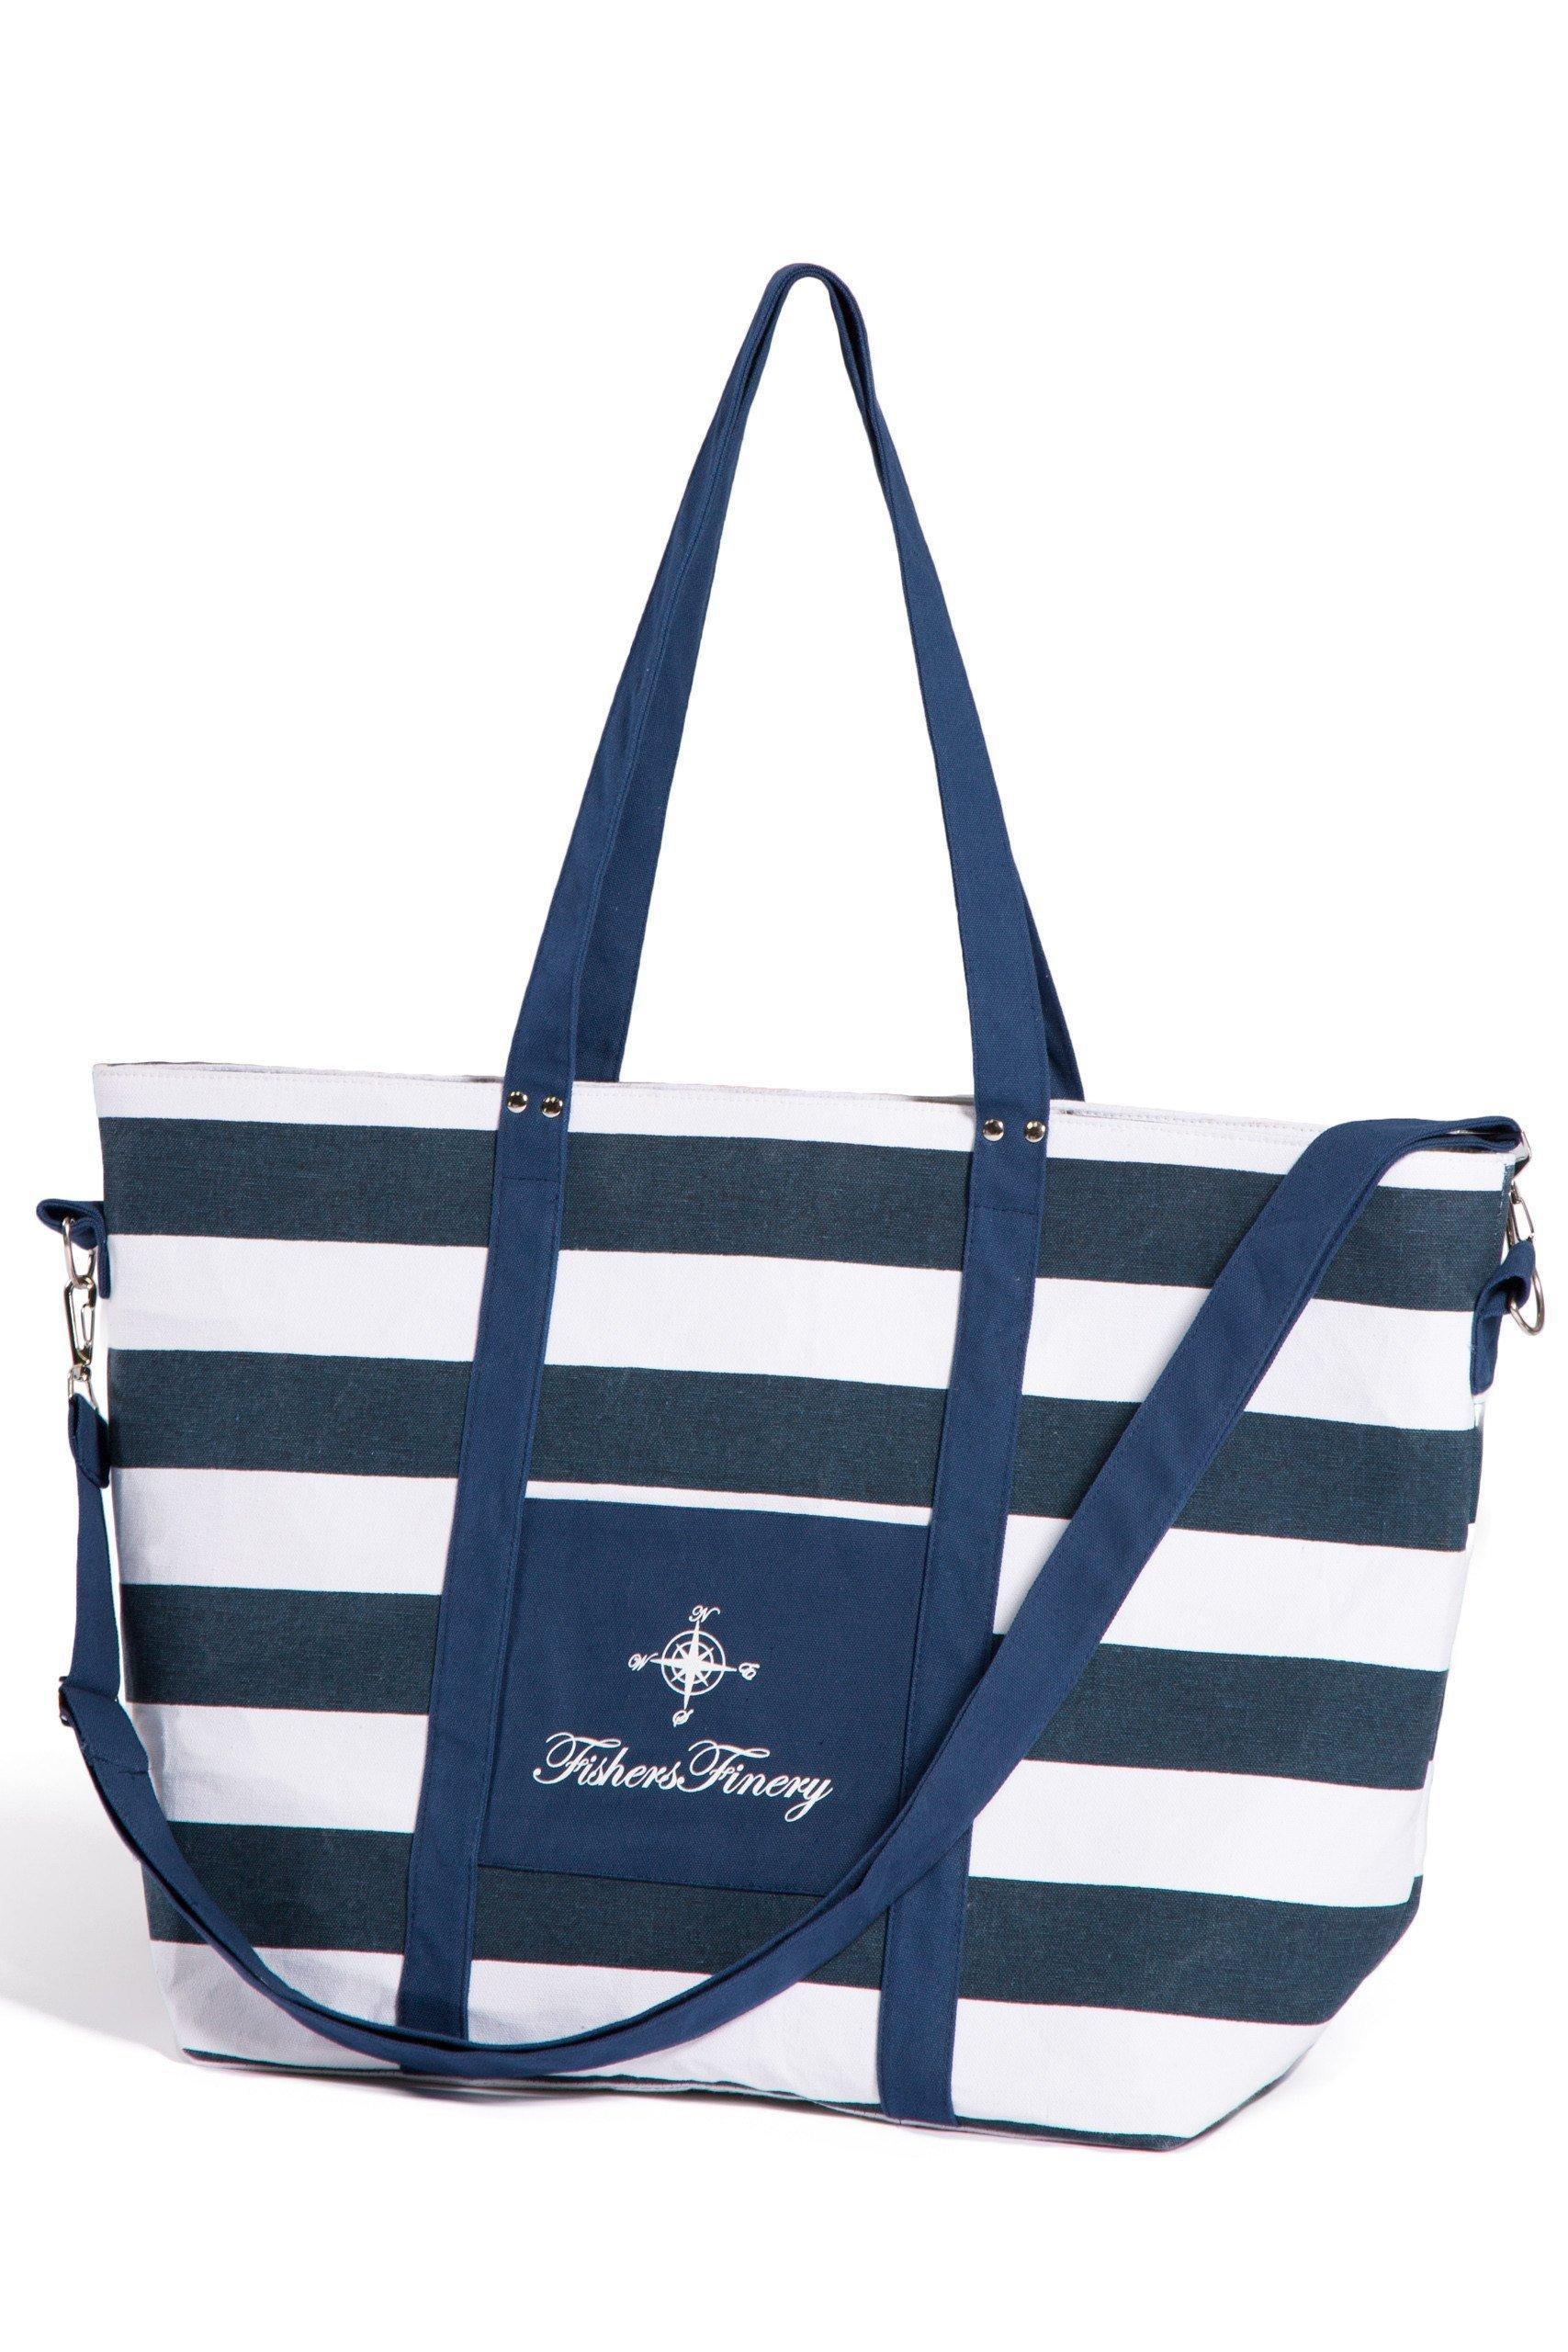 Heavy Canvas Insulated Beach Bag - Fishers Finery